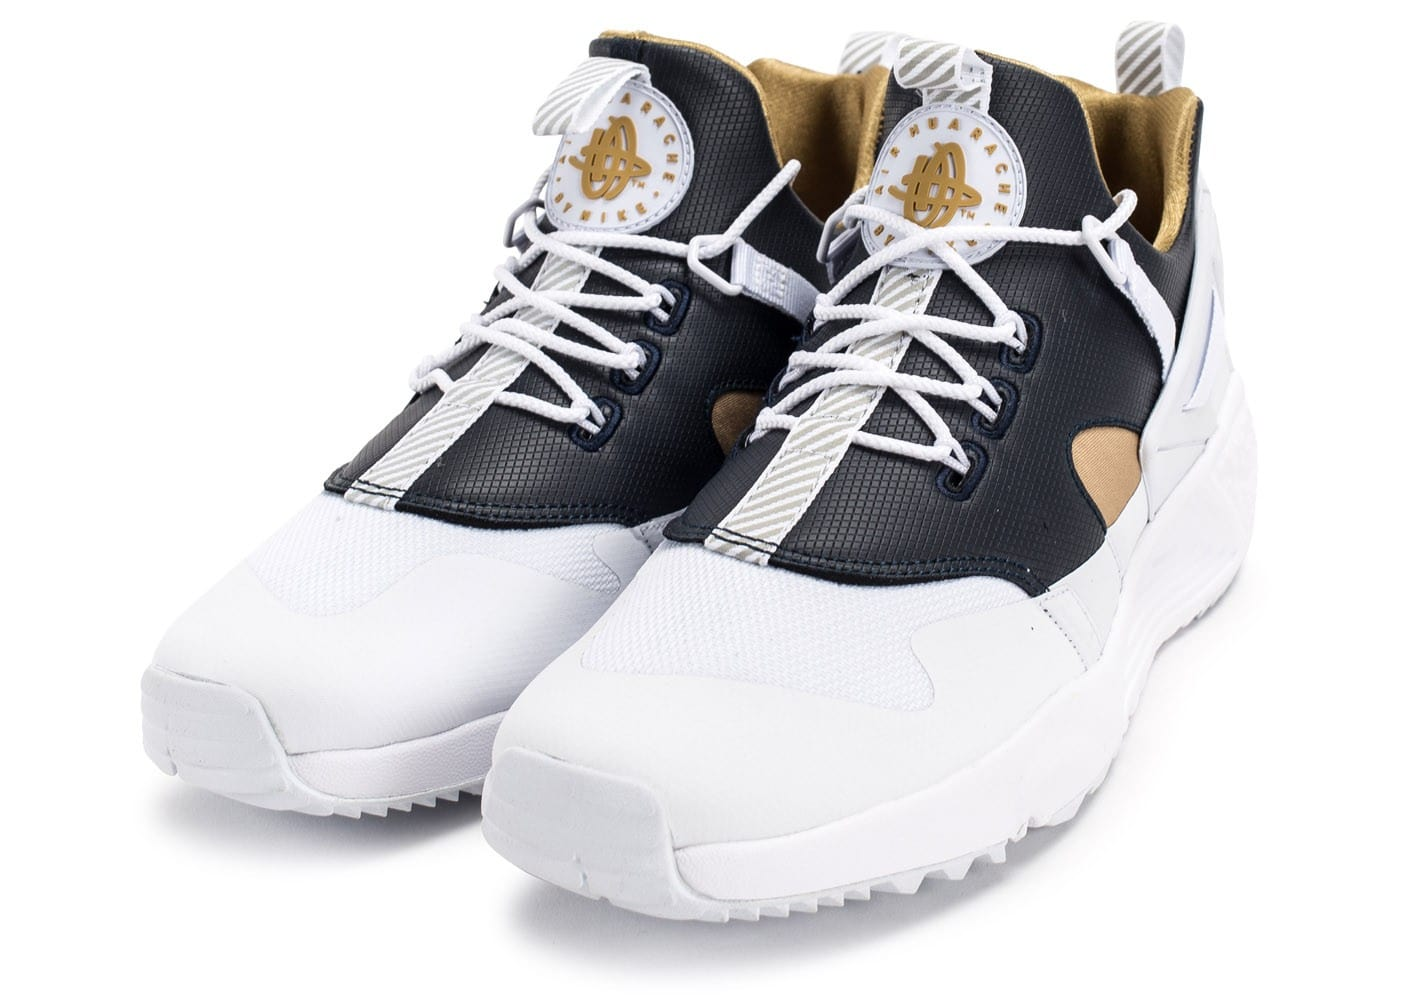 nike huarache utility premium blanche et or chaussures homme chausport. Black Bedroom Furniture Sets. Home Design Ideas